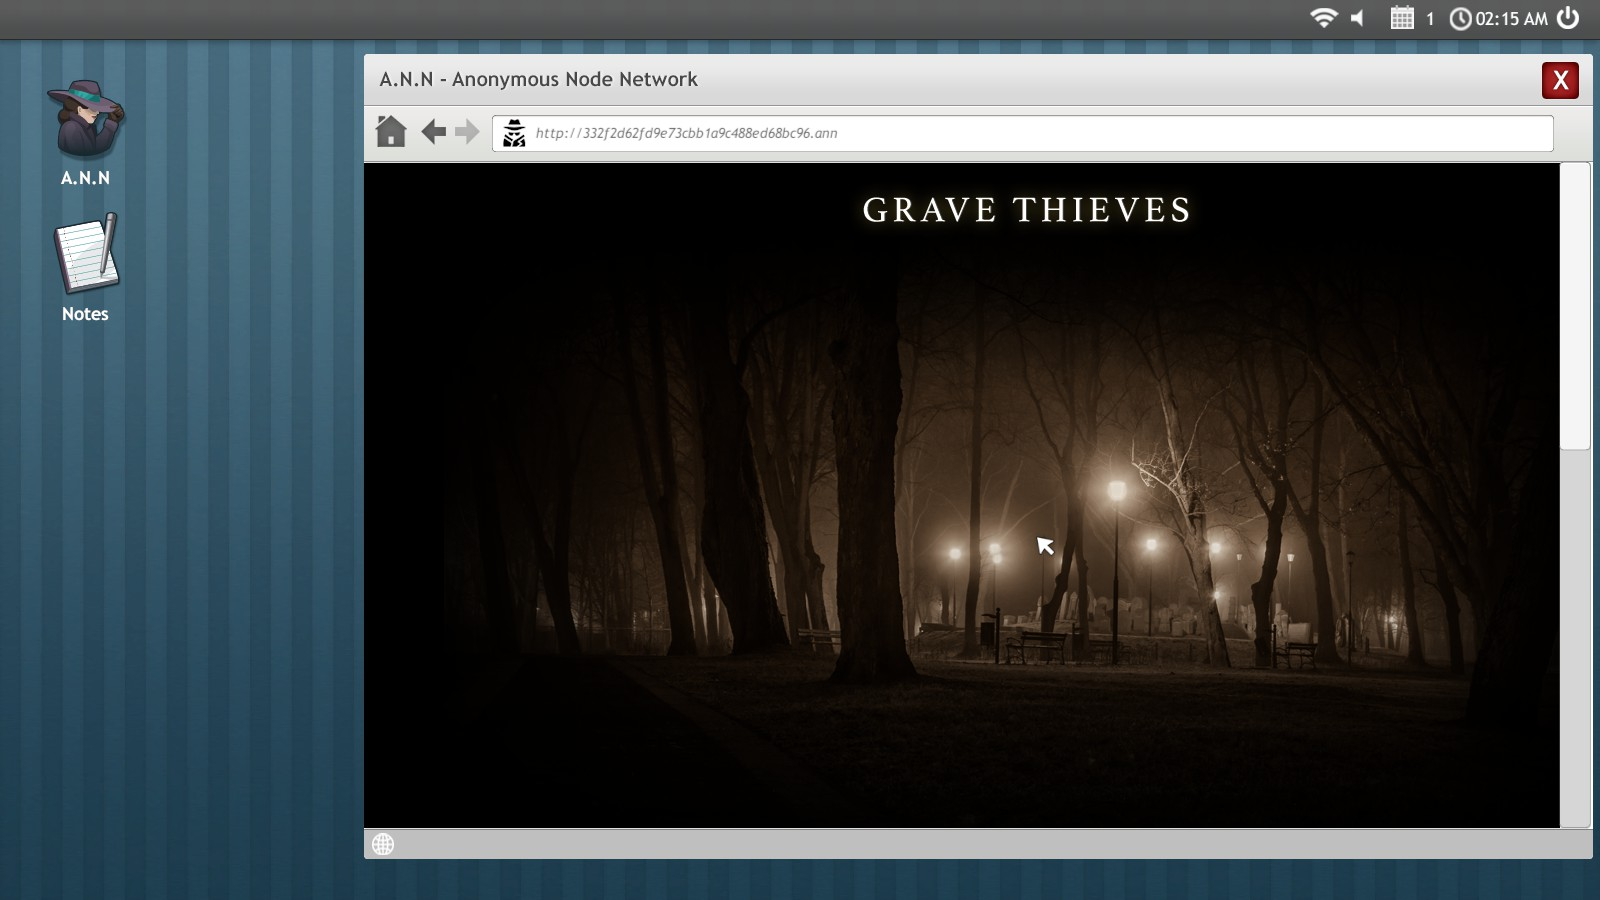 Grave Thieves